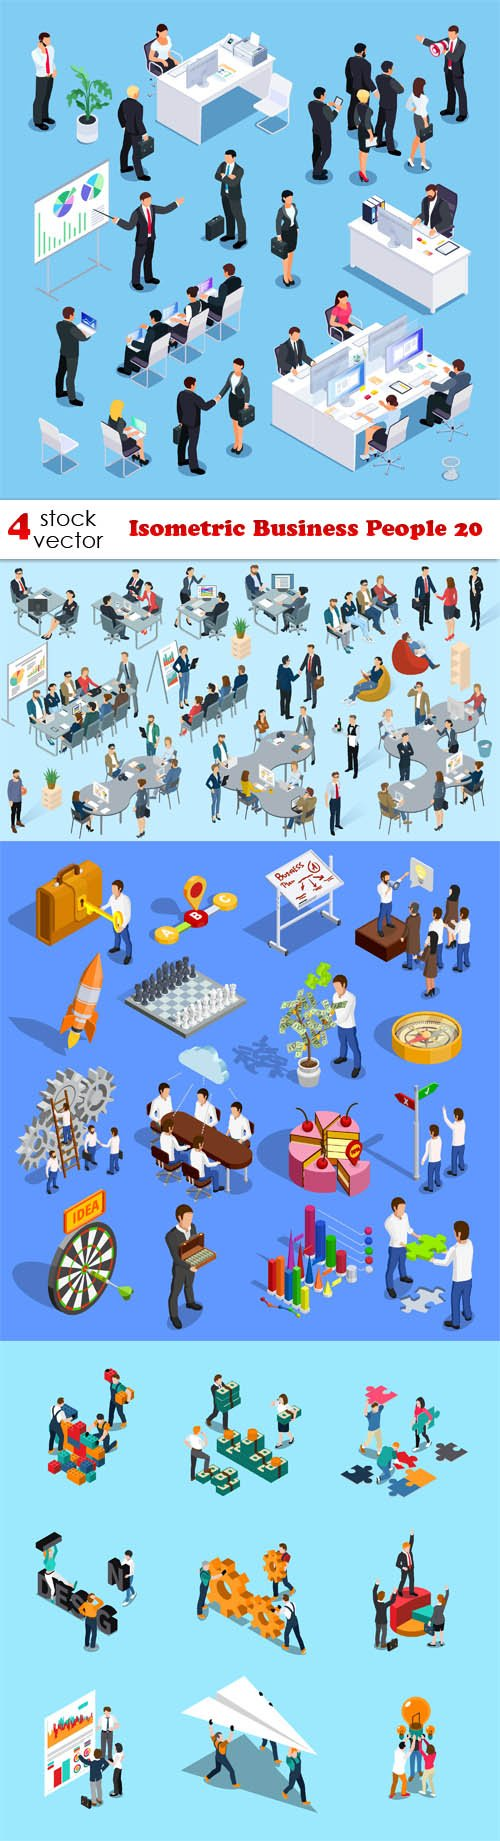 Vectors - Isometric Business People 20